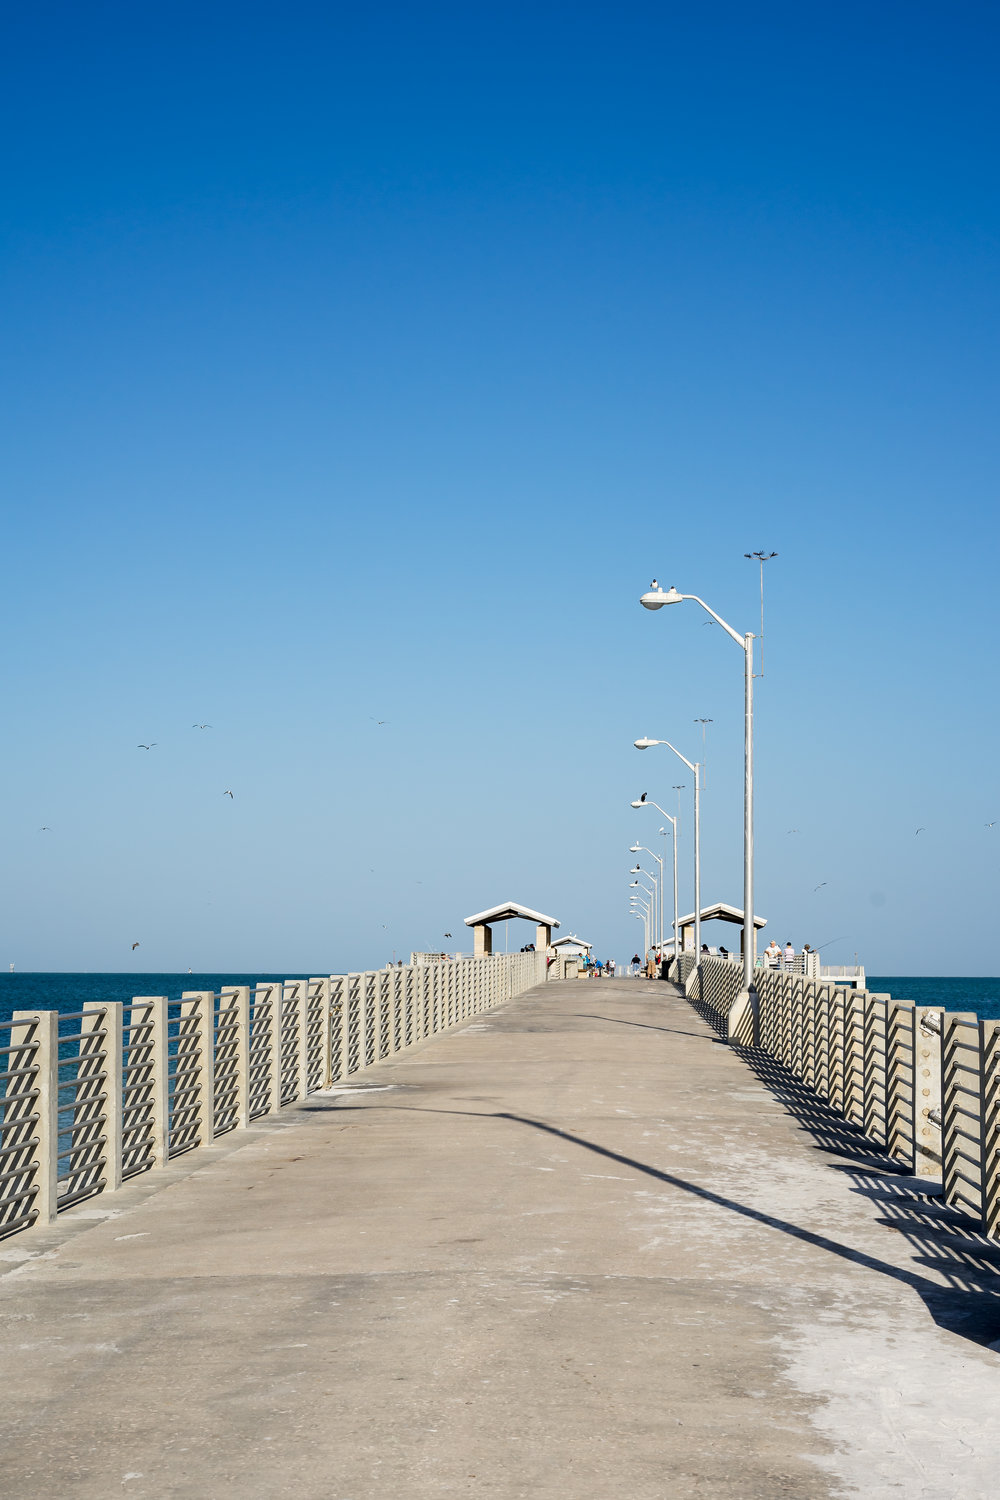 The Gulf Pier on Easter morning. A rare sight as it is usually crowded with fisherman and beach goers every weekend.The Gulf Pier is noted for sheepshead, pampano, Spanish mackerel, King fish, tarpon and cobia. This location also has snacks, bait, and assorted beach items at their shop.